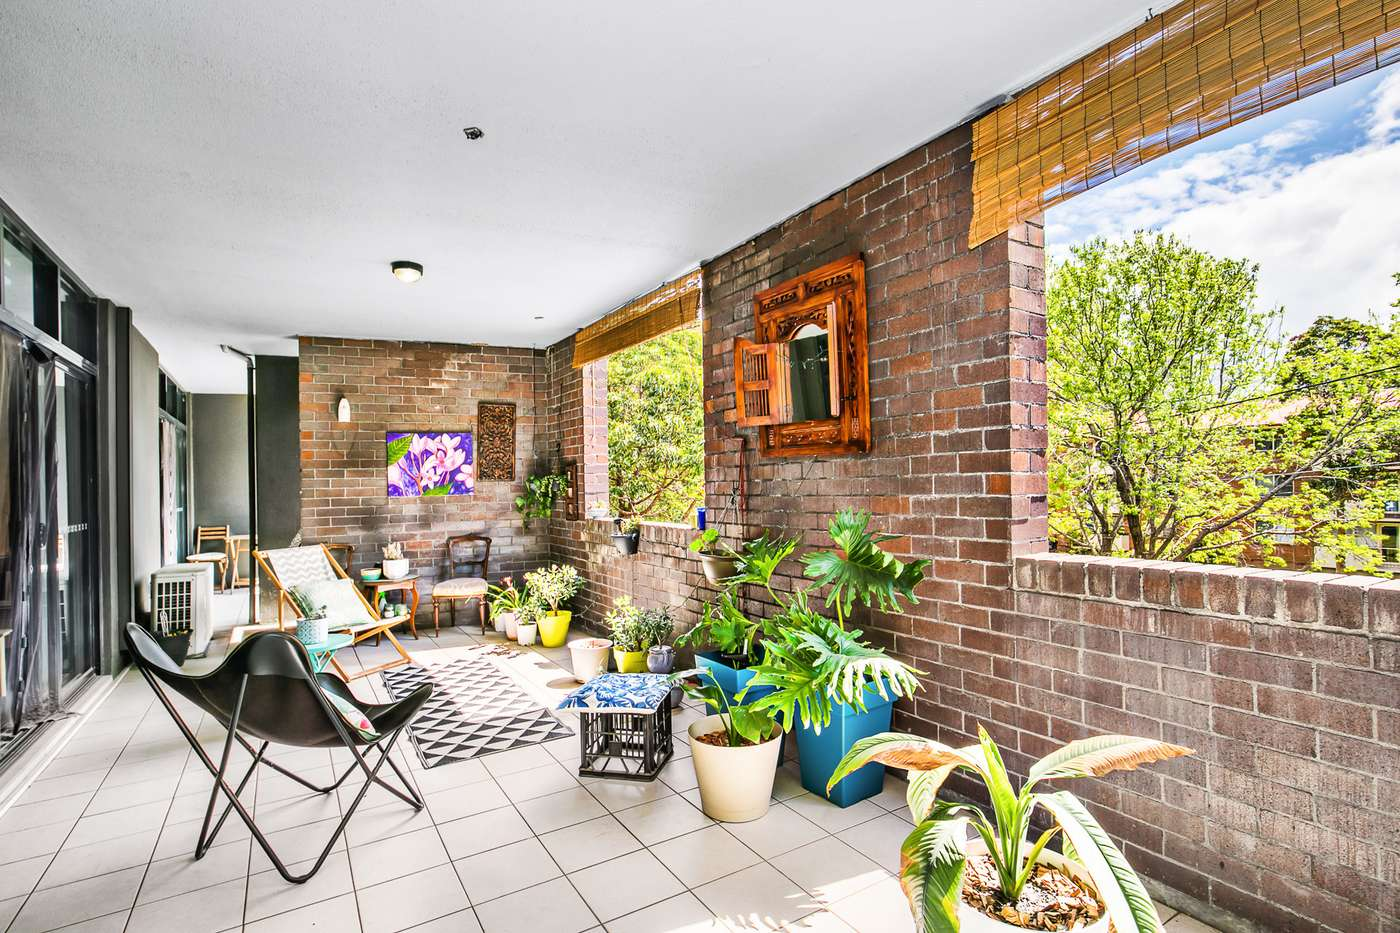 Main view of Homely apartment listing, 11/52-54 McEvoy Street, Waterloo, NSW 2017